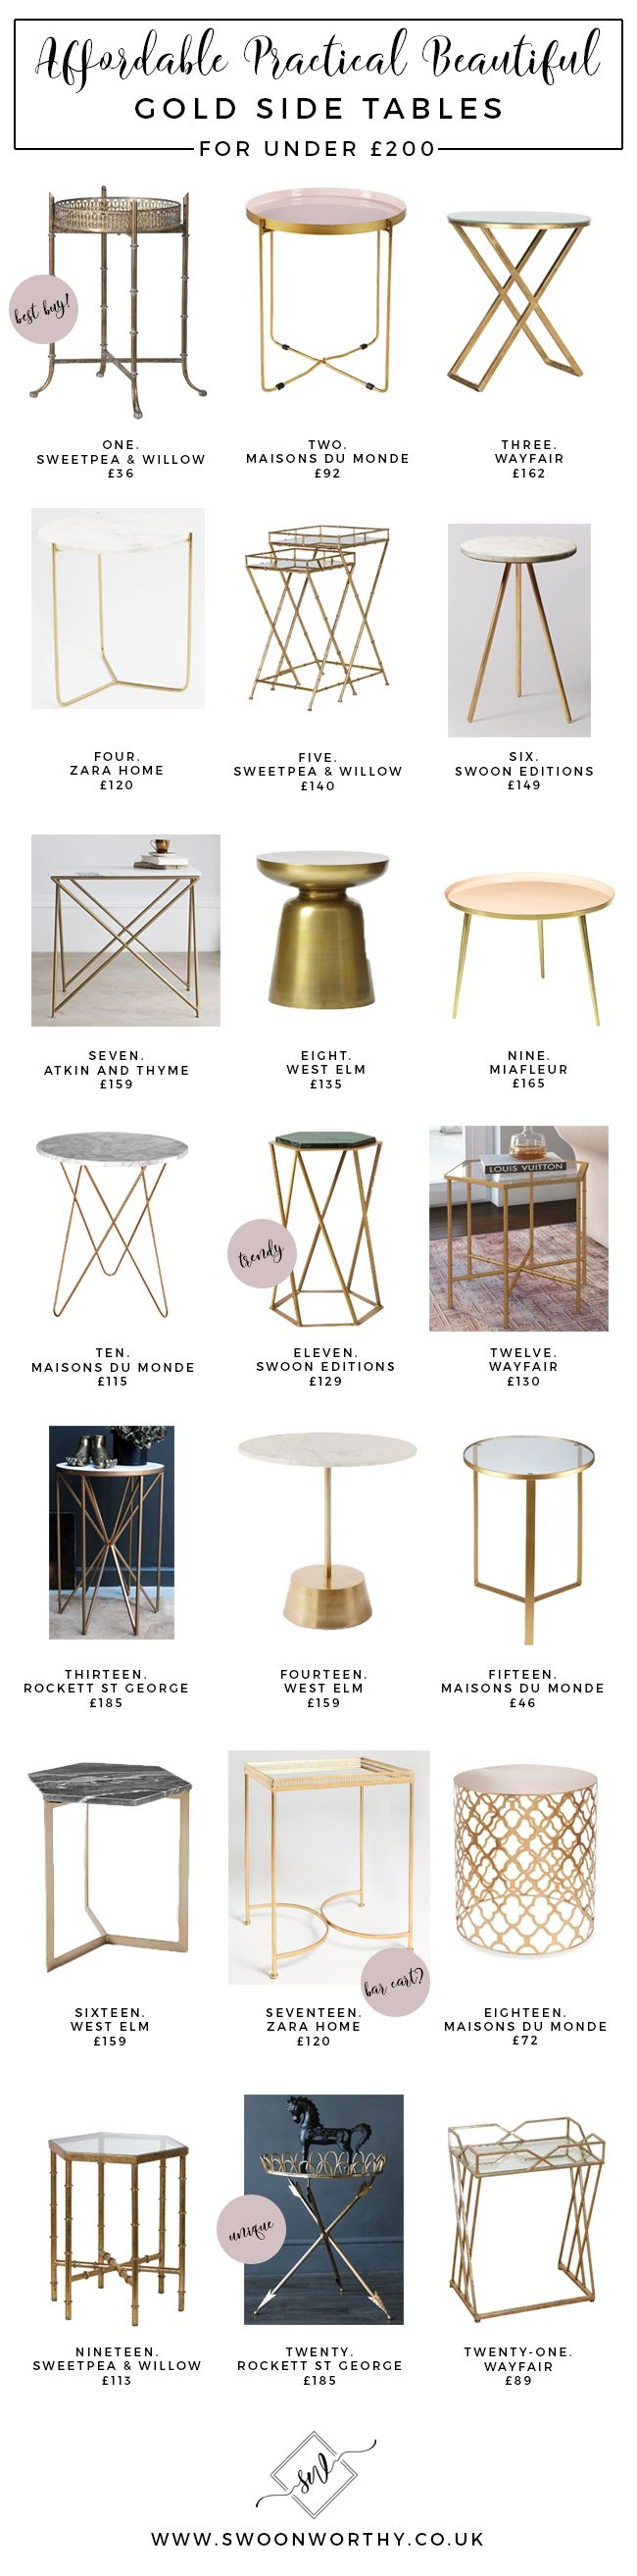 Affordable Brass and Gold Side Tables under £200